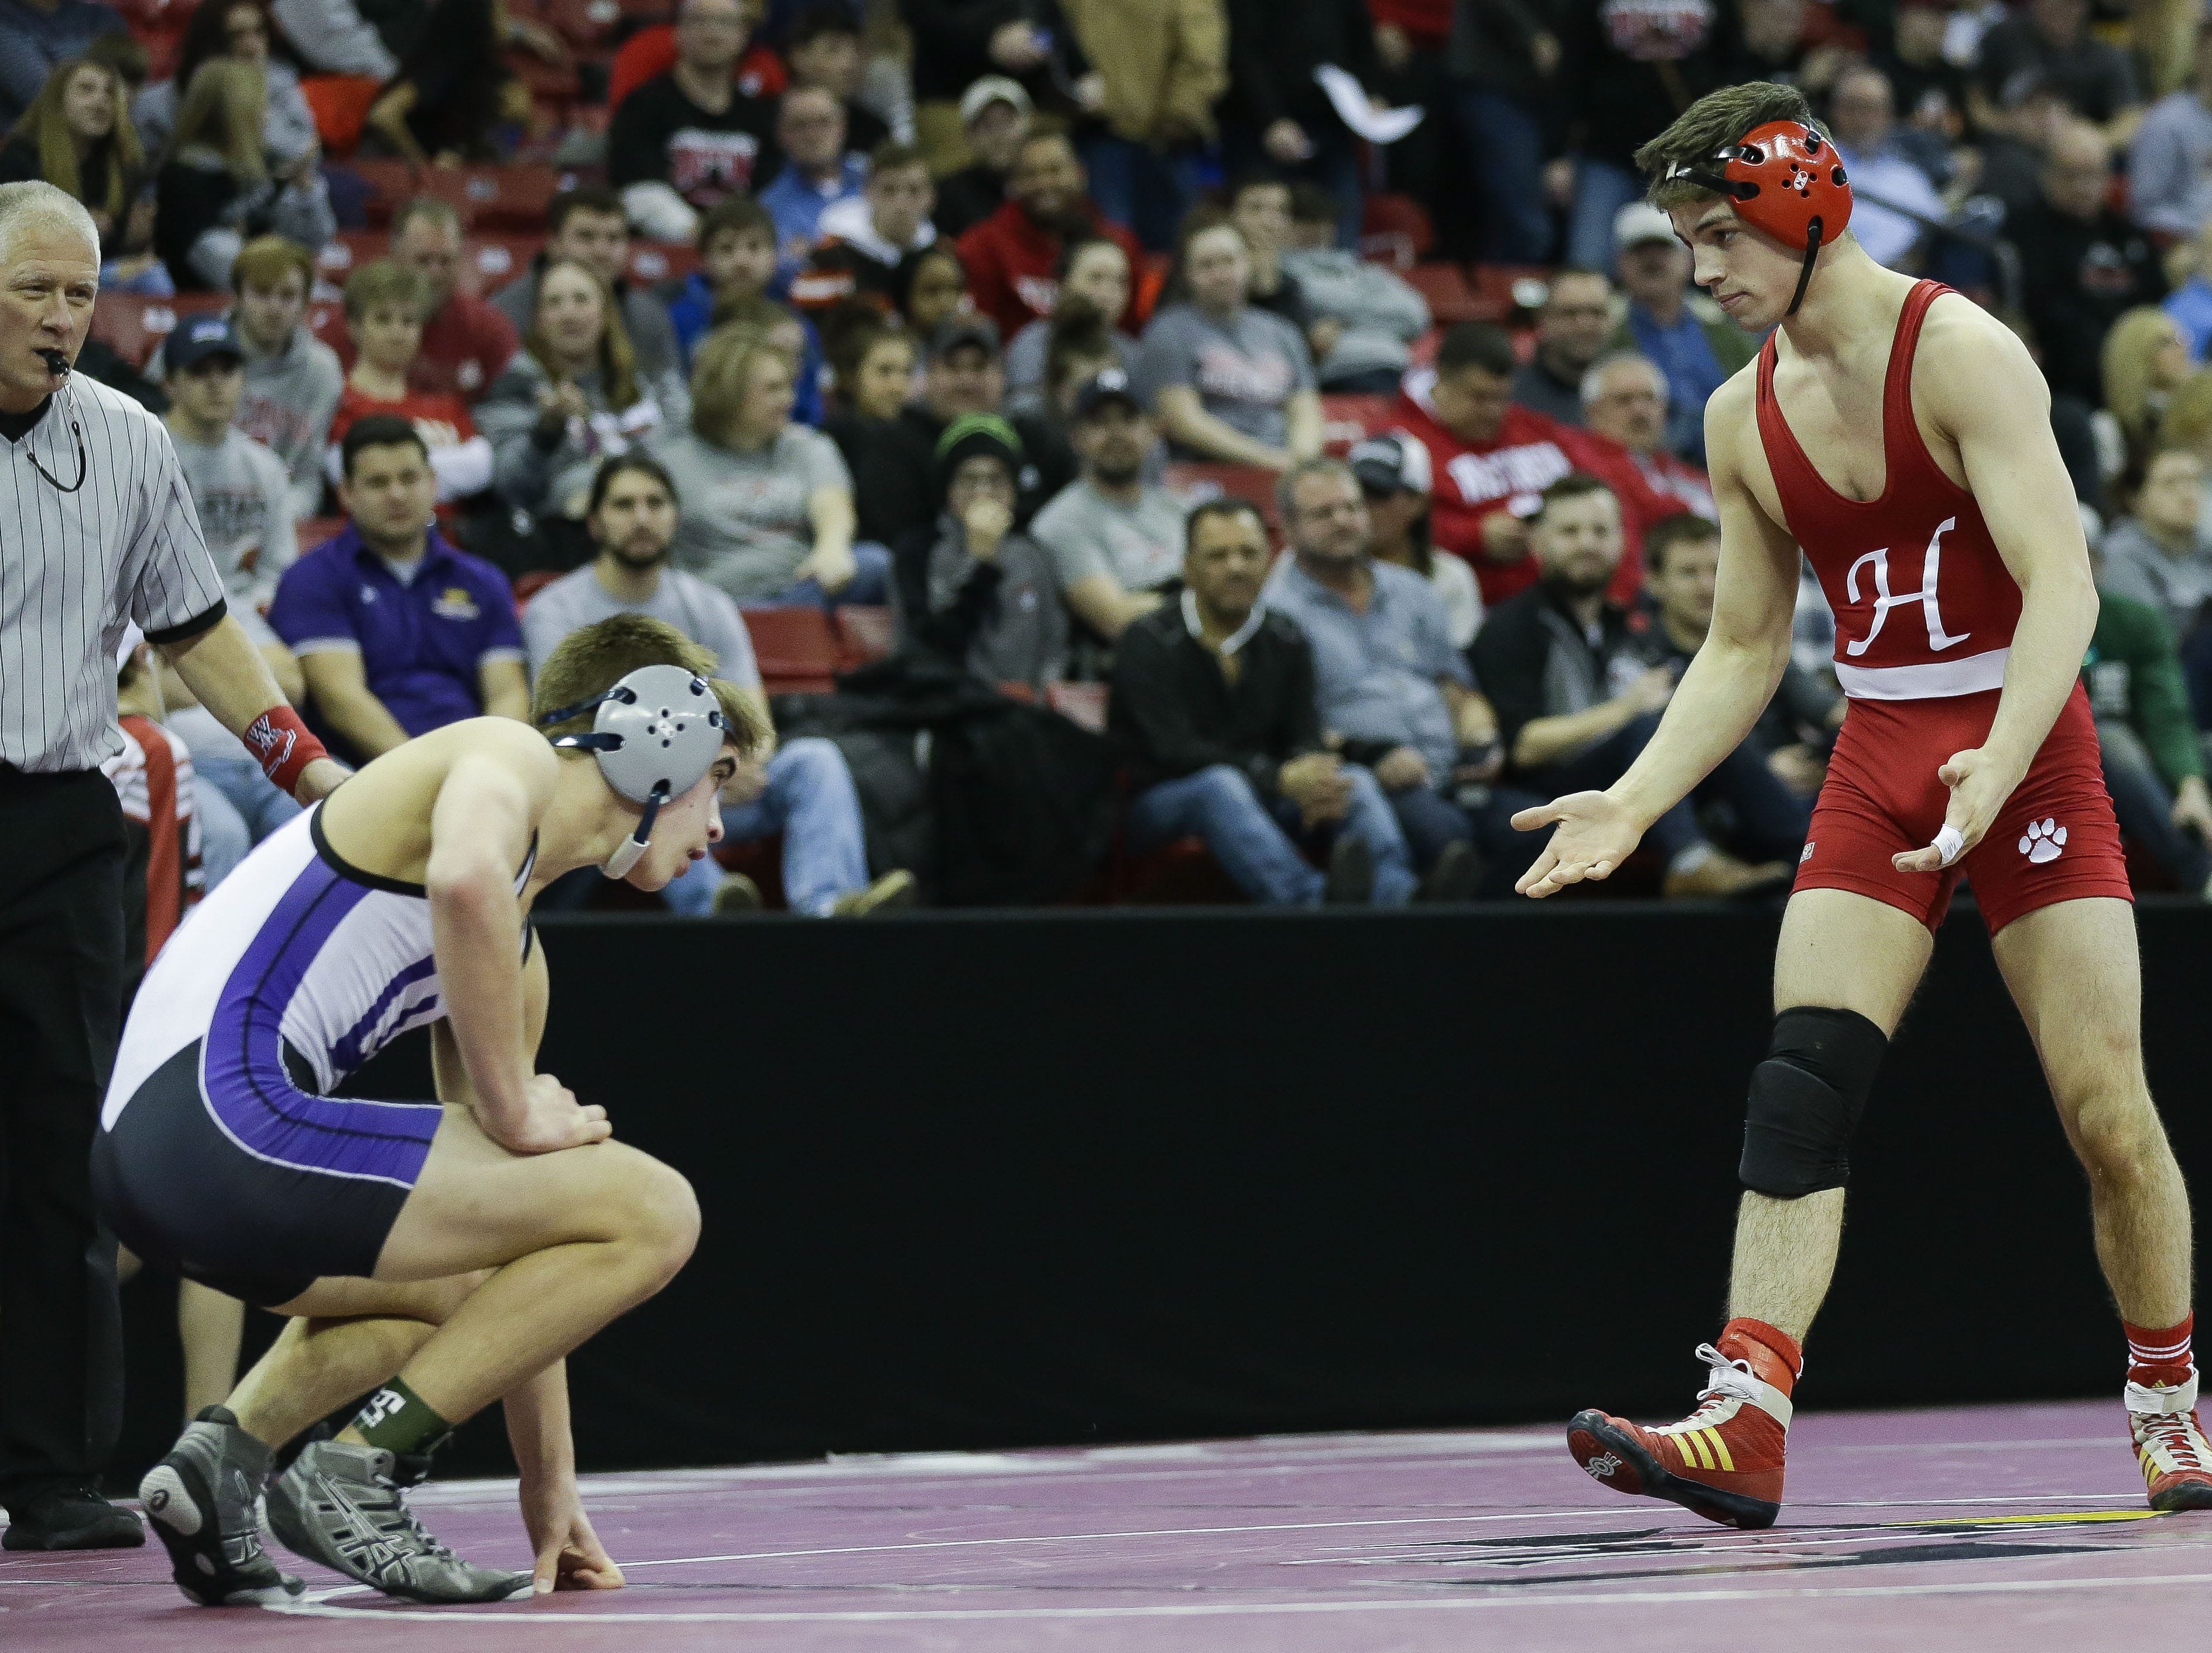 Hortonville's Eric Barnett gestures to Waunakee's Berhett Statz in a Division 1 126-pound preliminary match during the WIAA state wrestling tournament on Thursday, February 21, 2019, at the Kohl Center in Madison, Wis. Tork Mason/USA TODAY NETWORK-Wisconsin